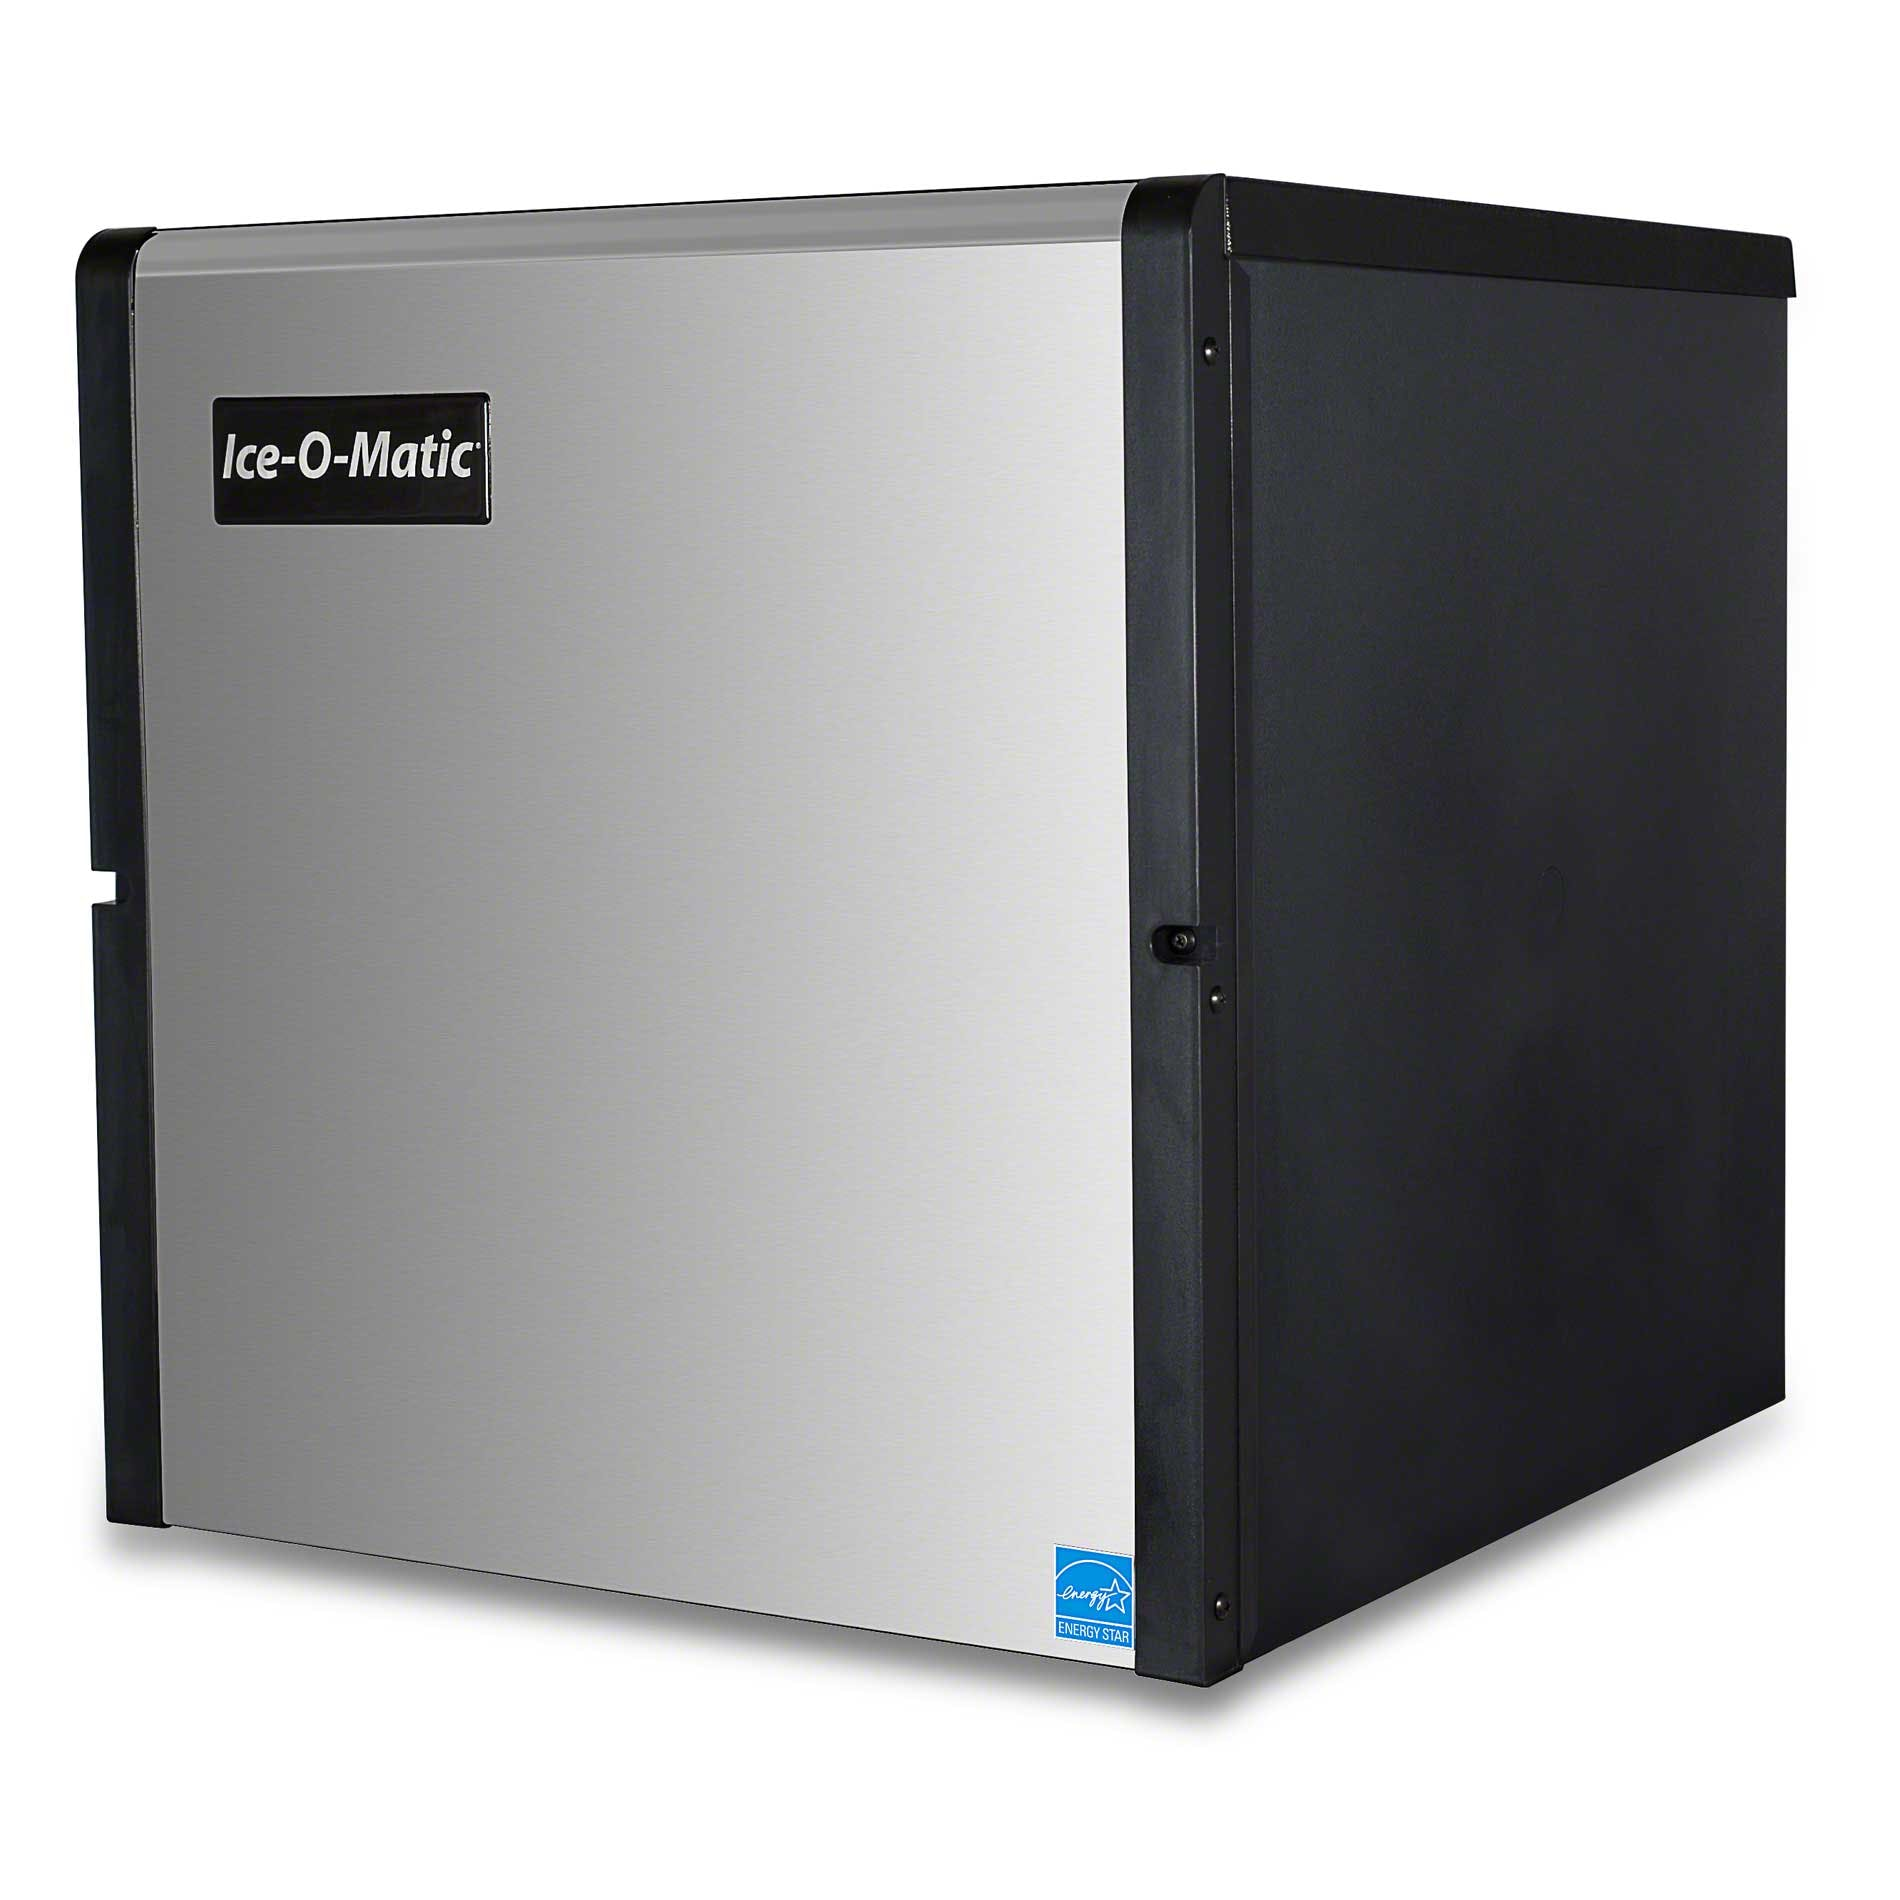 Ice-O-Matic - ICE0320FW 349 lb Full Cube Ice Machine - sold by Food Service Warehouse